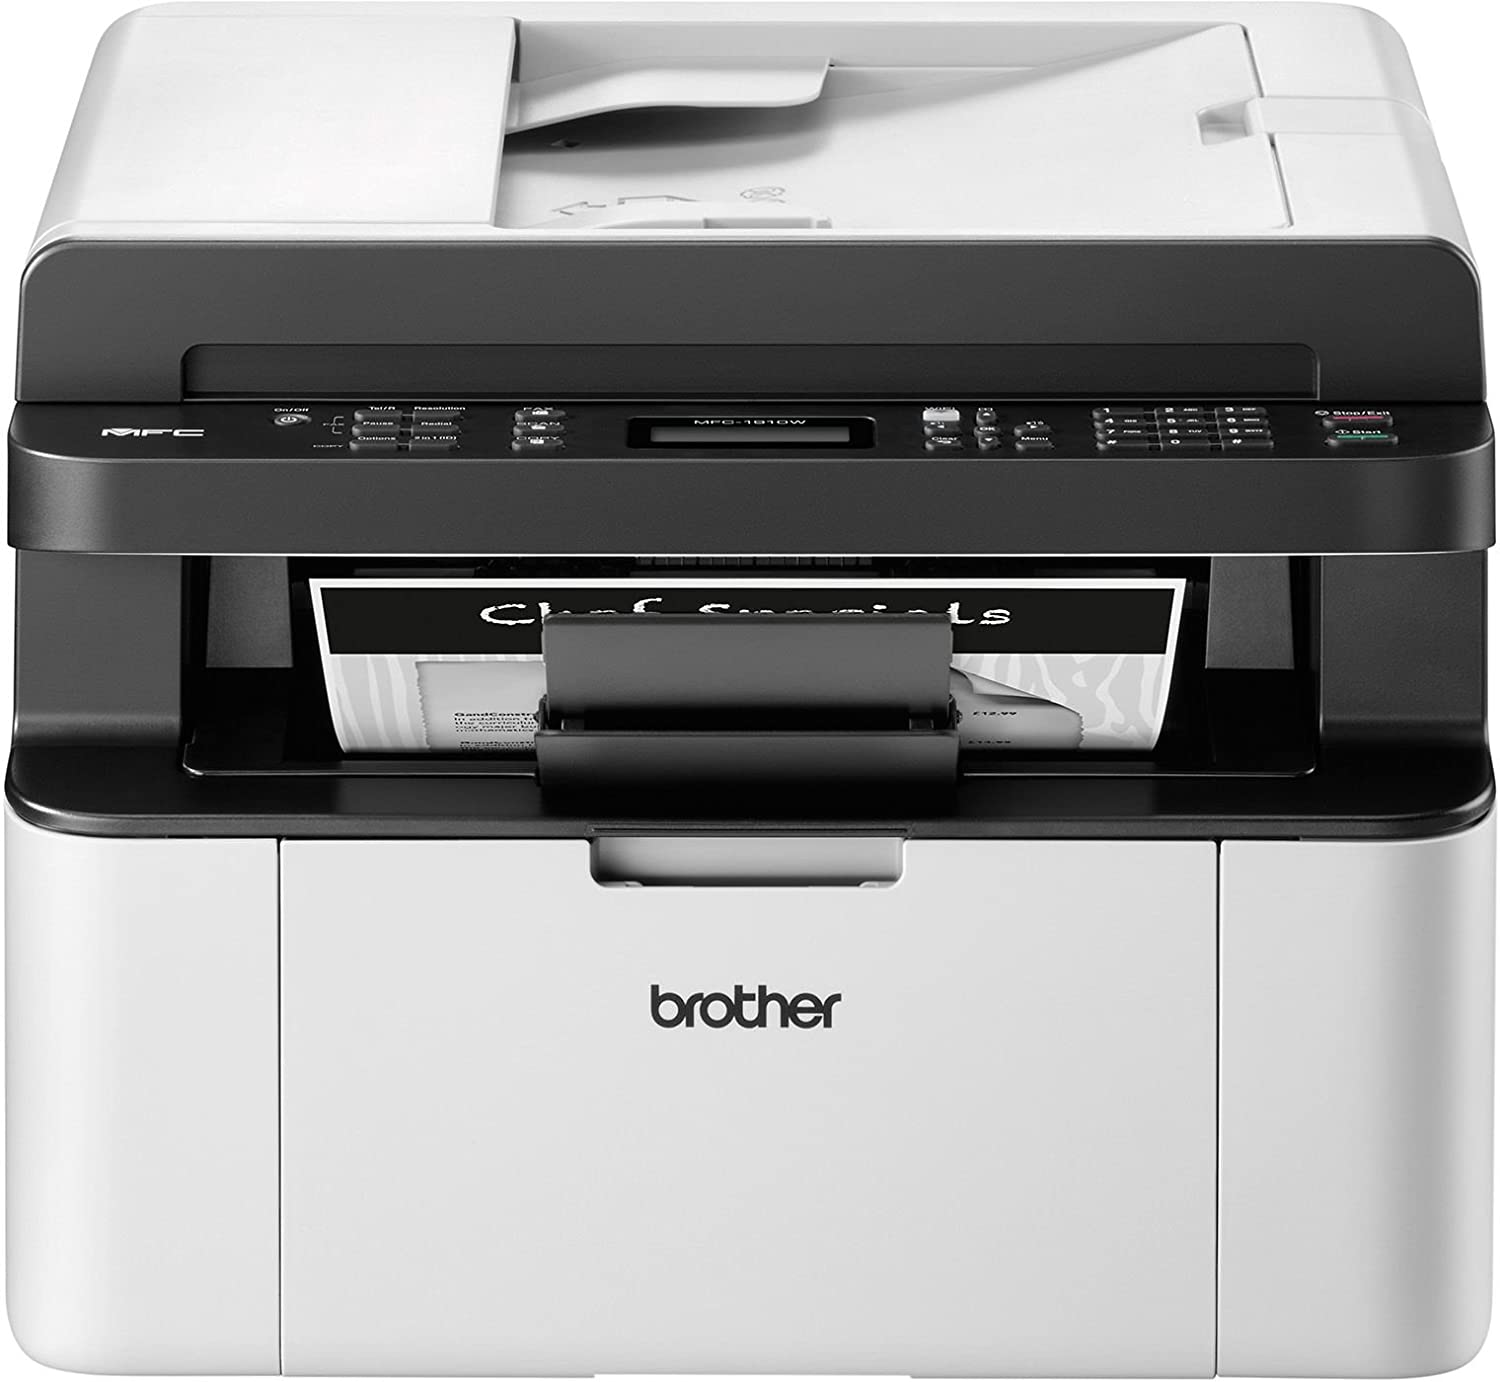 Brother MFC1910WG1 - Impresora multifunción láser: Amazon.es ...